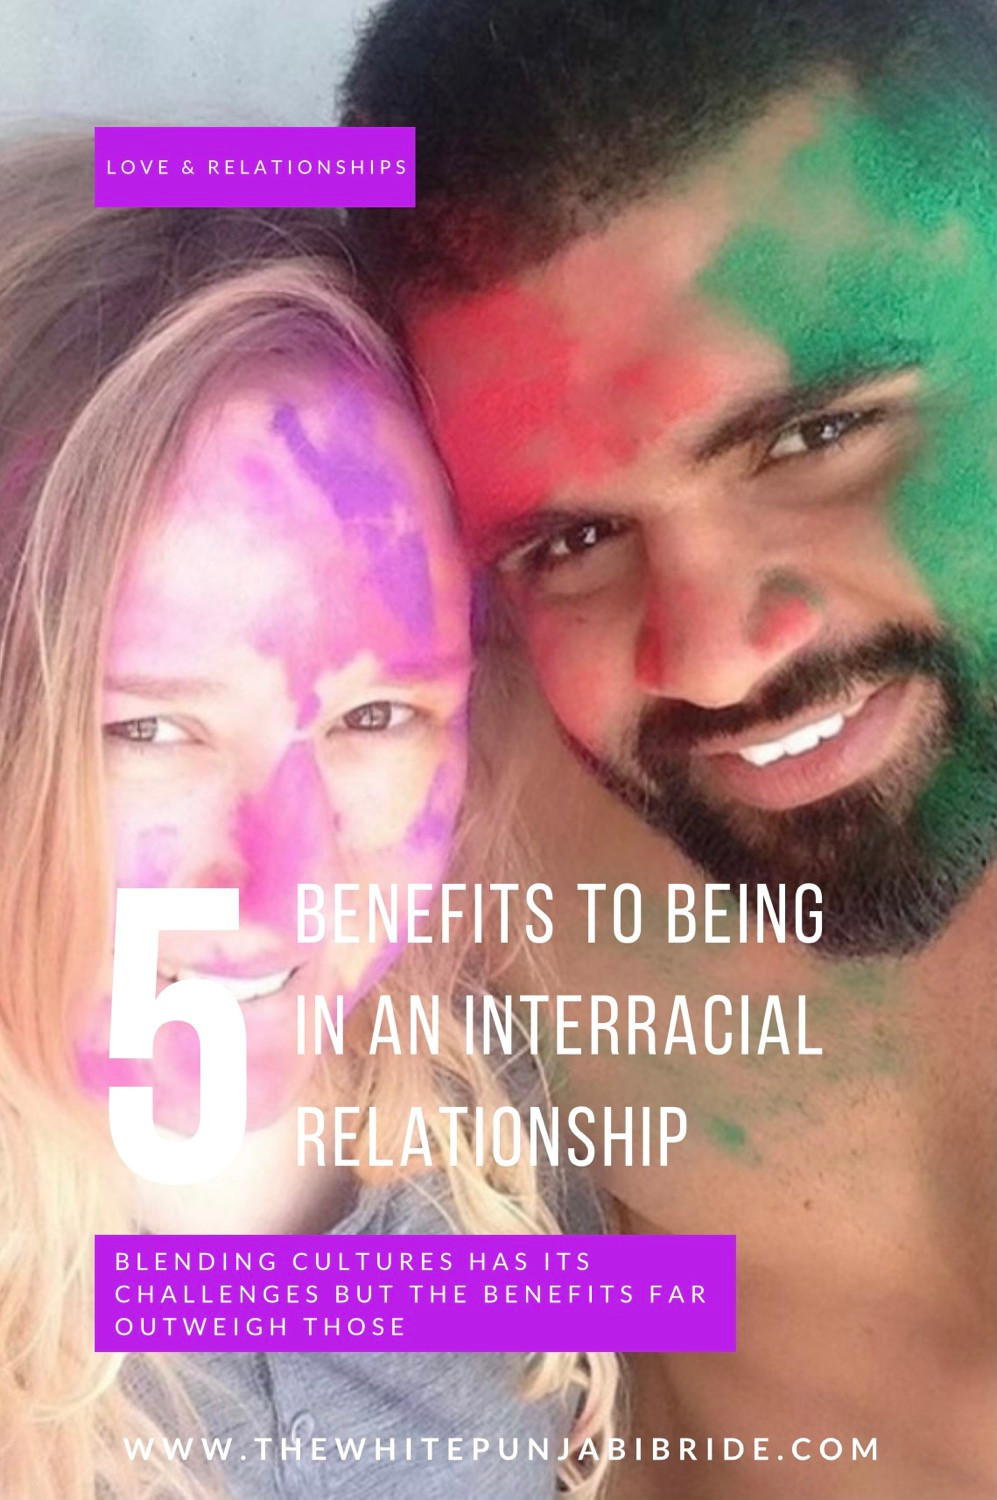 5 Benefits to Being in an Interracial Relationship